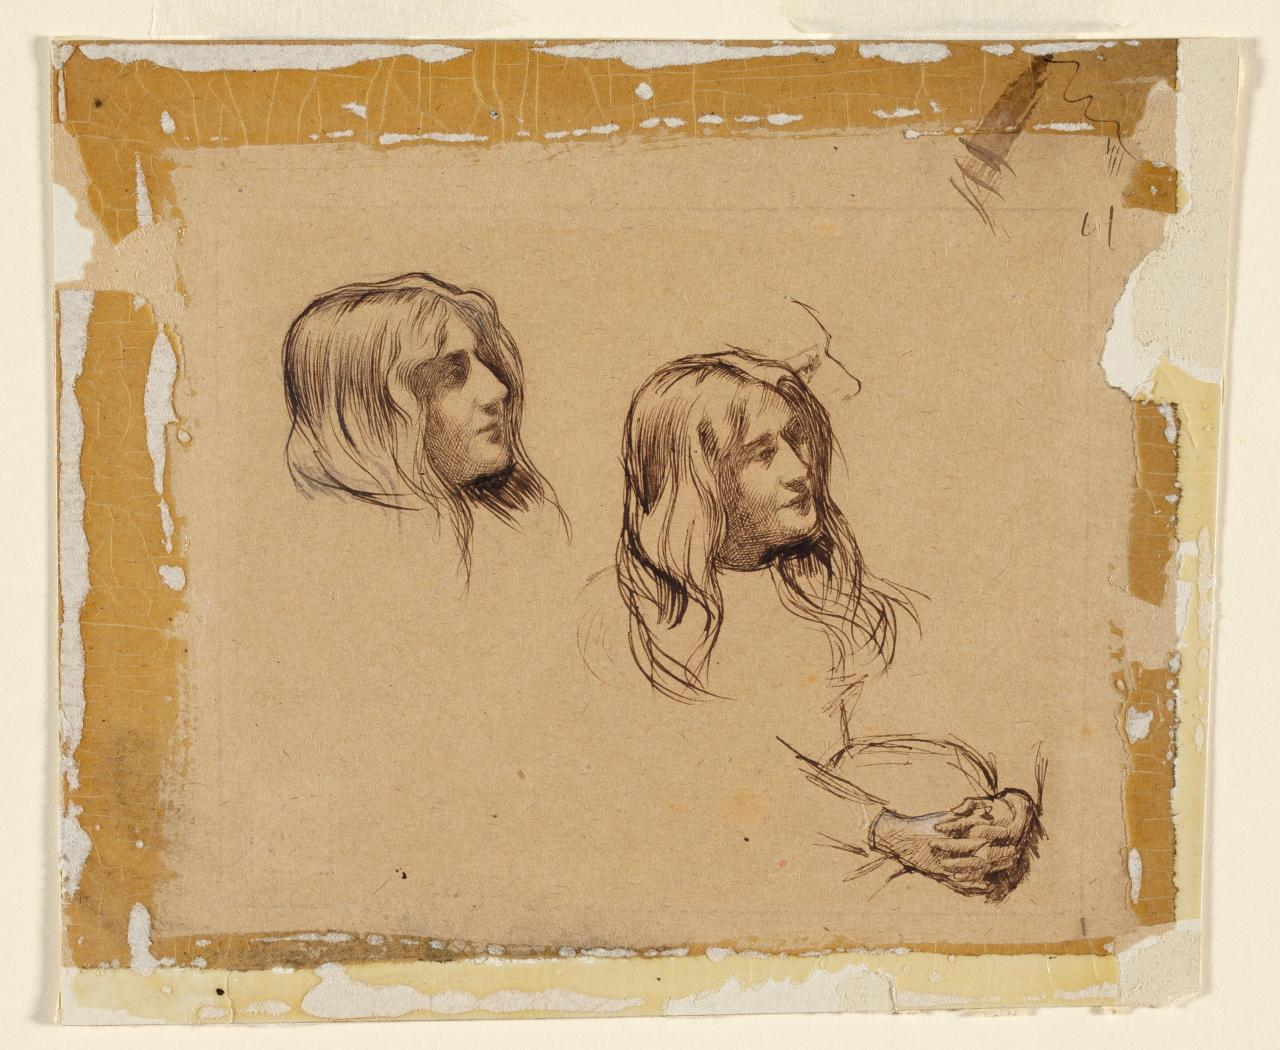 Studies of the same girl's head, hands clasped